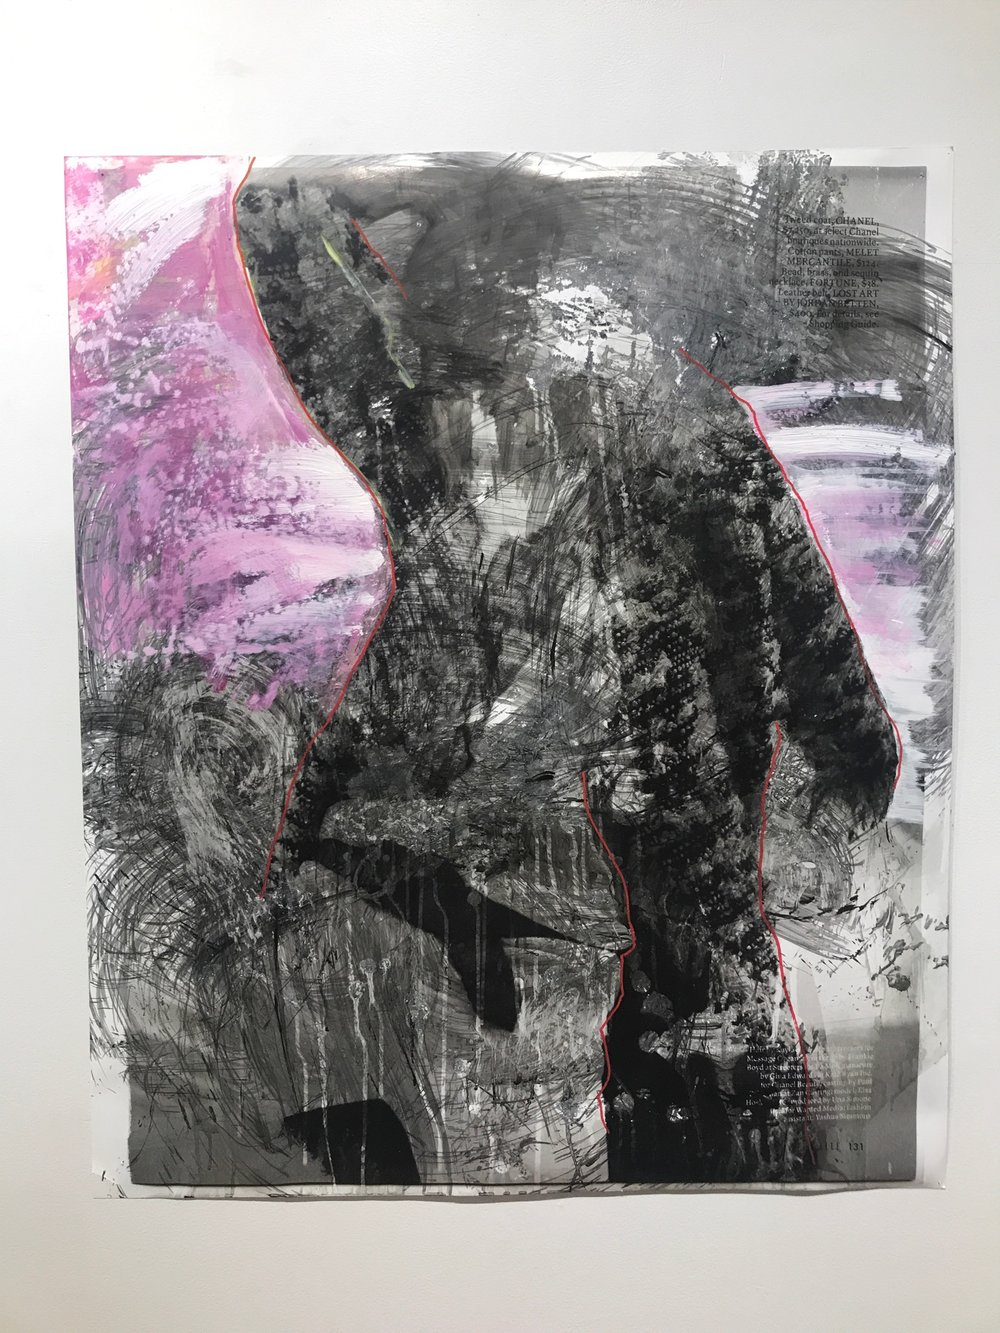 Elle 131   2018  43 x 36 in.  Citra solv on magazine, windex, bleach, acrylic, liquid acrylic, and marker on photo paper